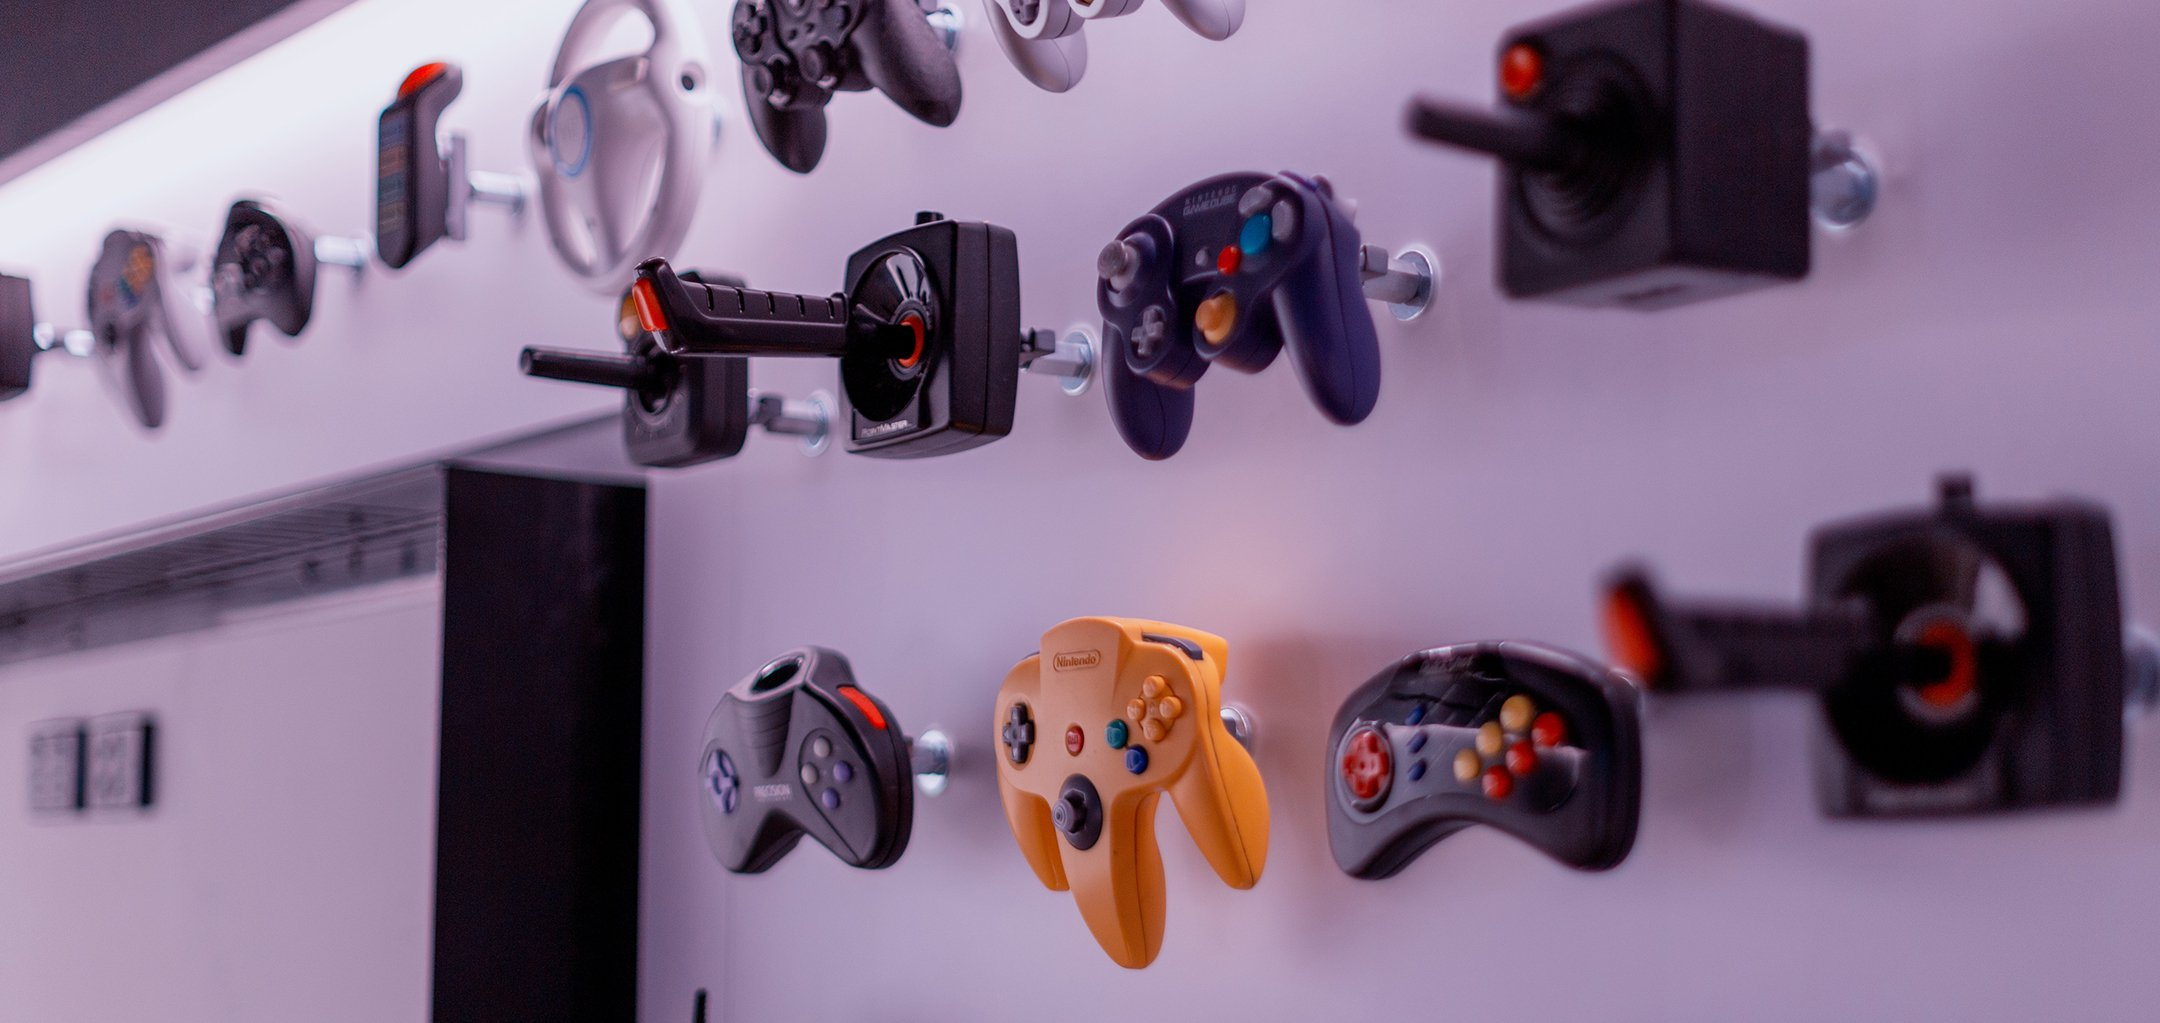 Wall of videogame controllers at ACMI